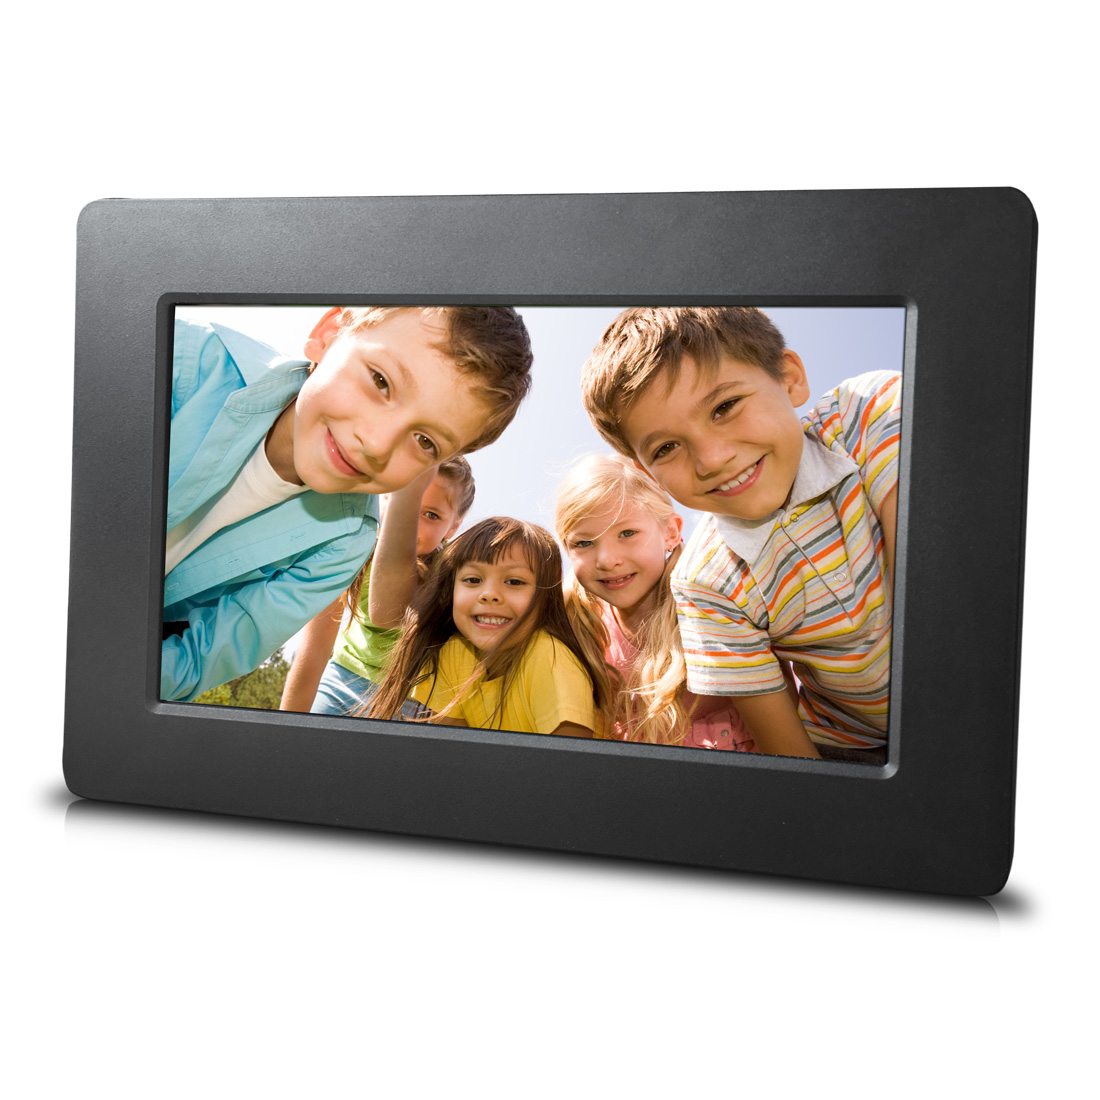 16 9 LED 15.4 Inch HD Multi-Function 1280800 Digital Photo Frame Music Movie Player with Remote Controller Black US Plug Digital Photo Frame